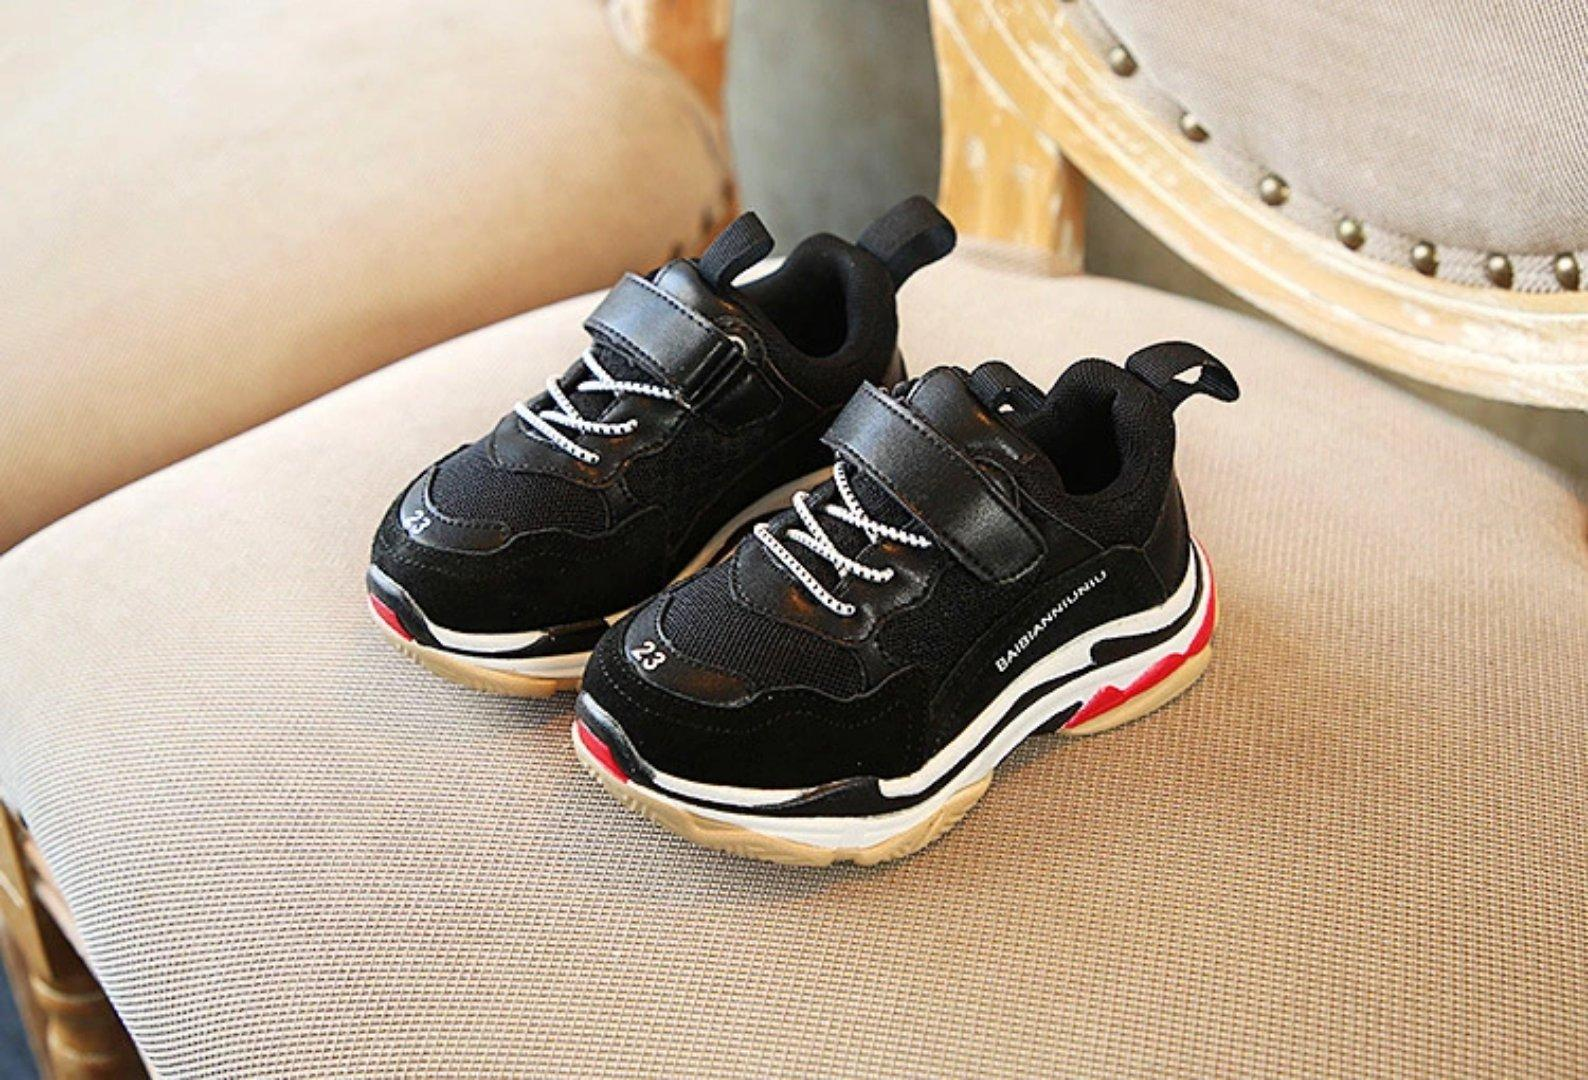 a1b00213526d4 Black Casual Shoes Lace Up Designer Comfort Pretty Girl Women Sneakers  Casual Net Shoes Men Womens Sneakers Extremely Durable Stability Black Casual  Shoes ...